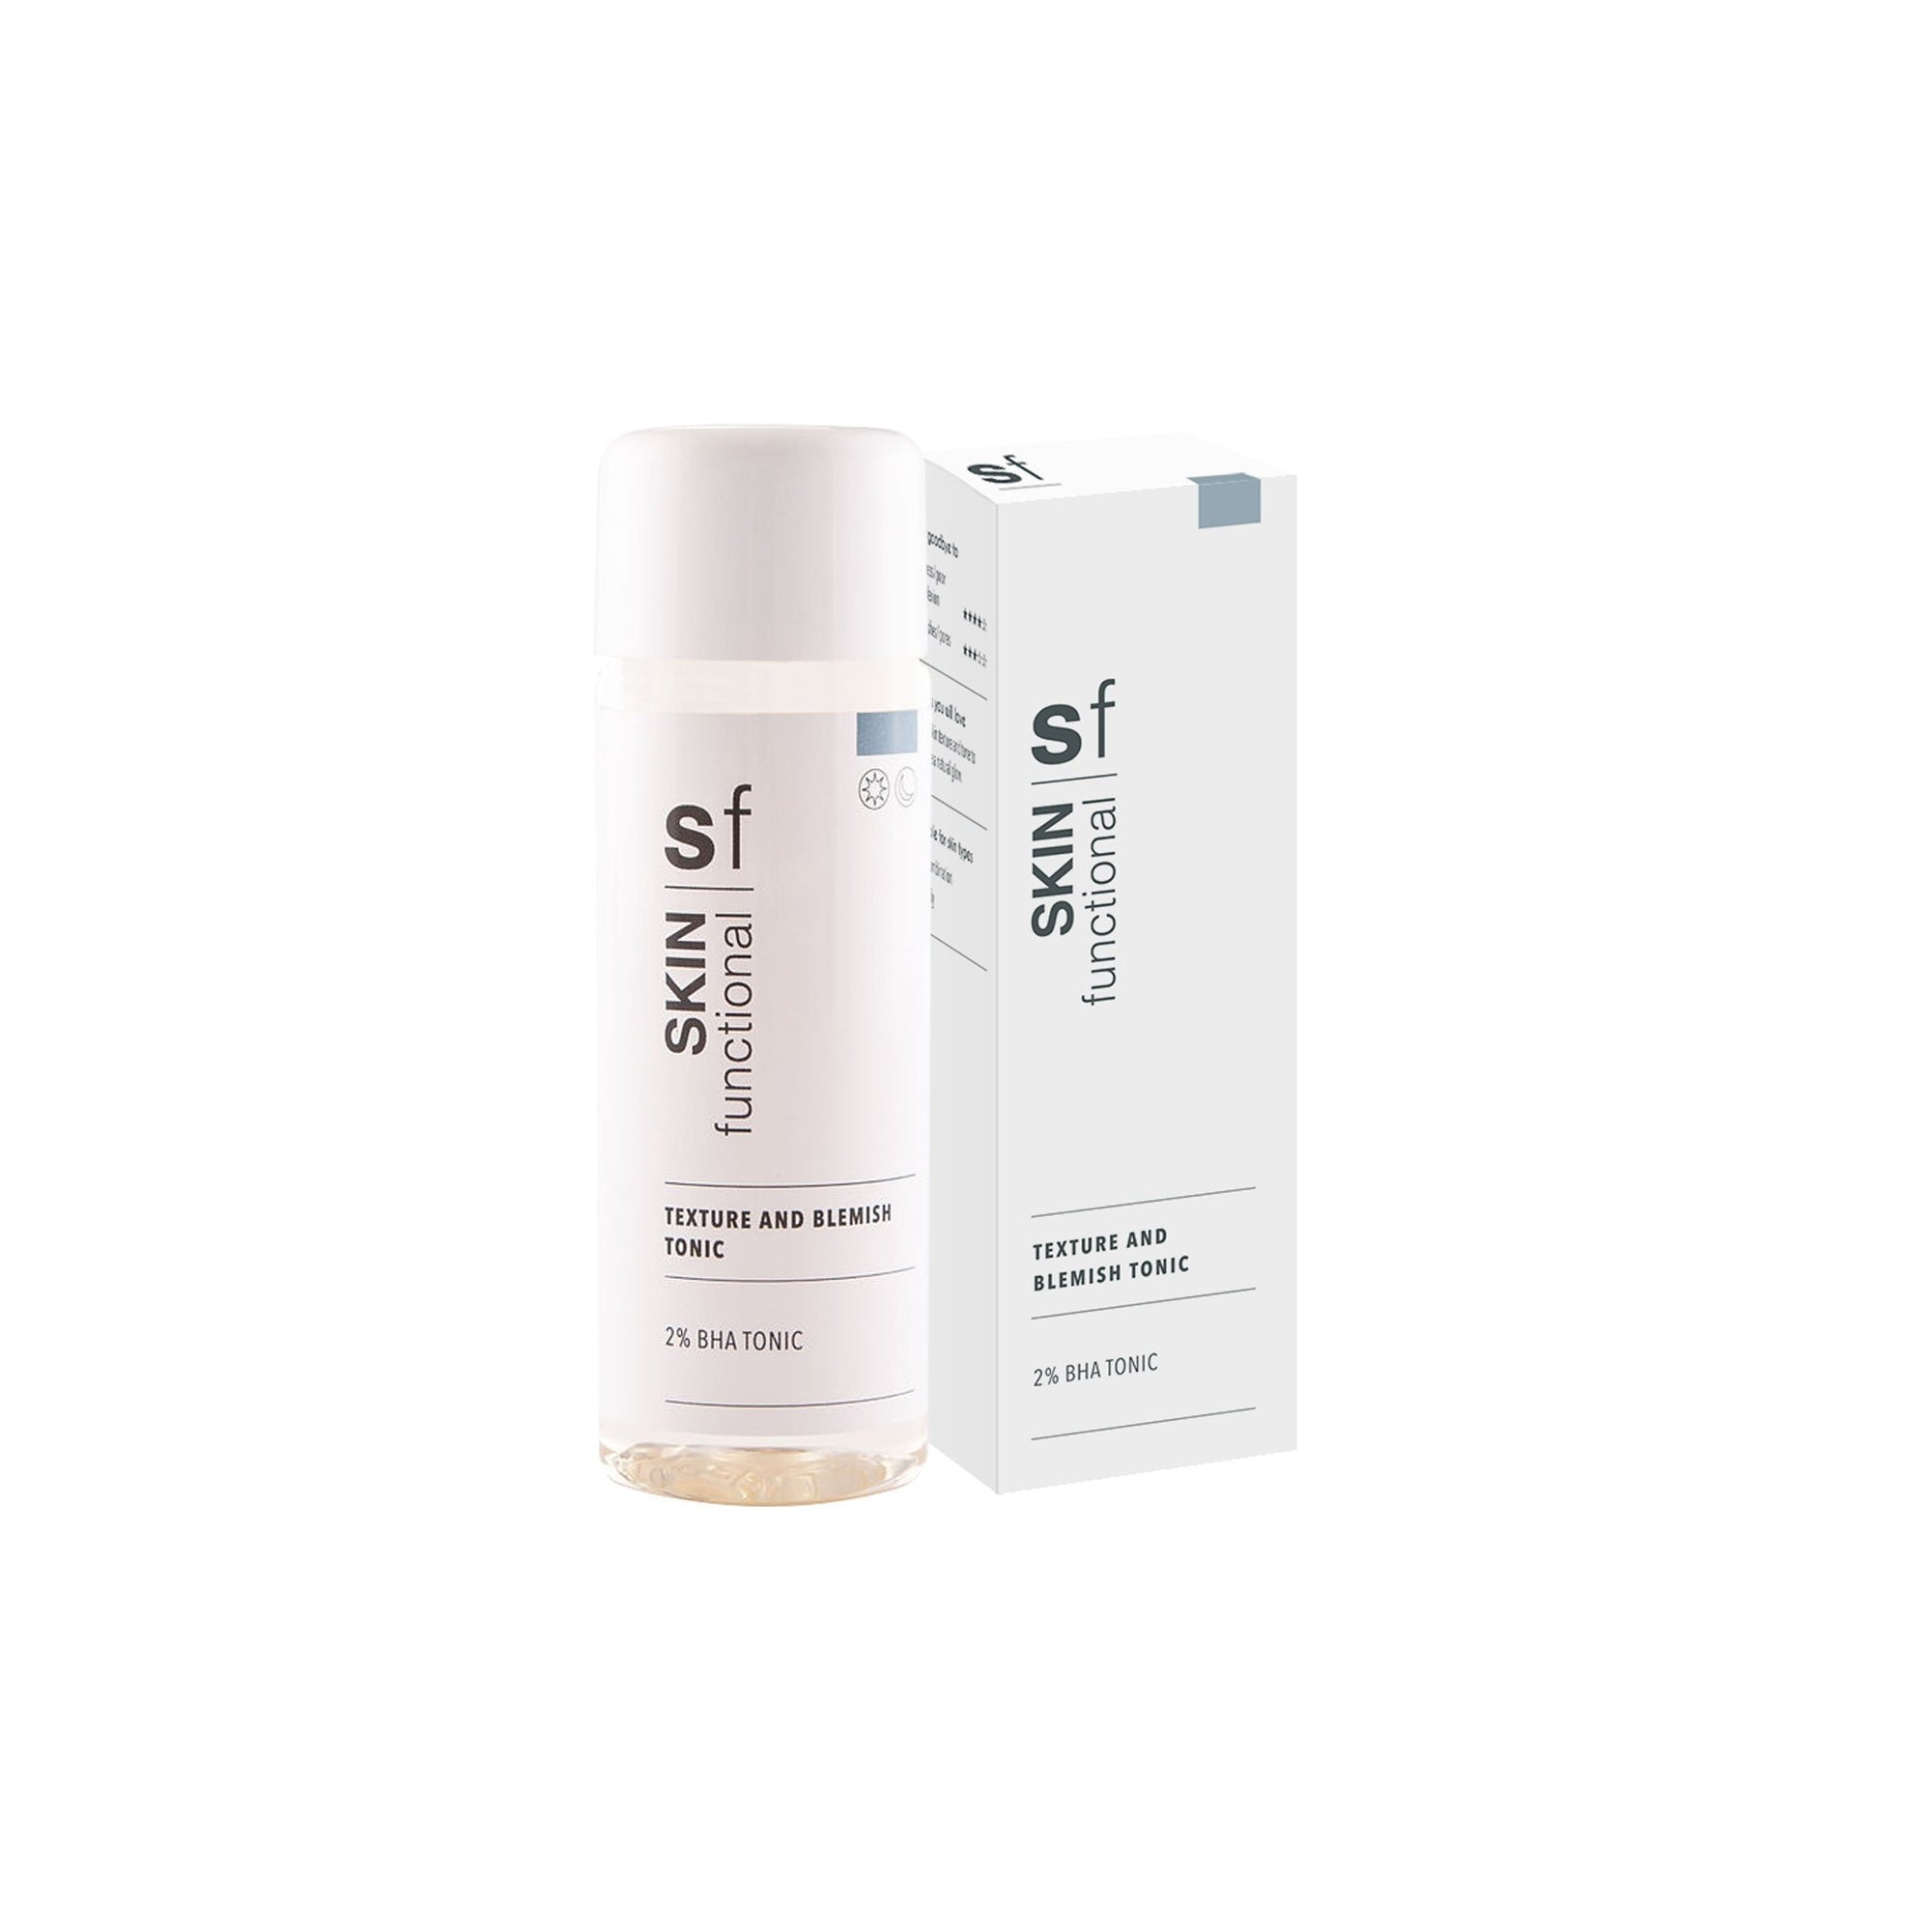 Skin Functional Texture and Blemish Tonic 100ml